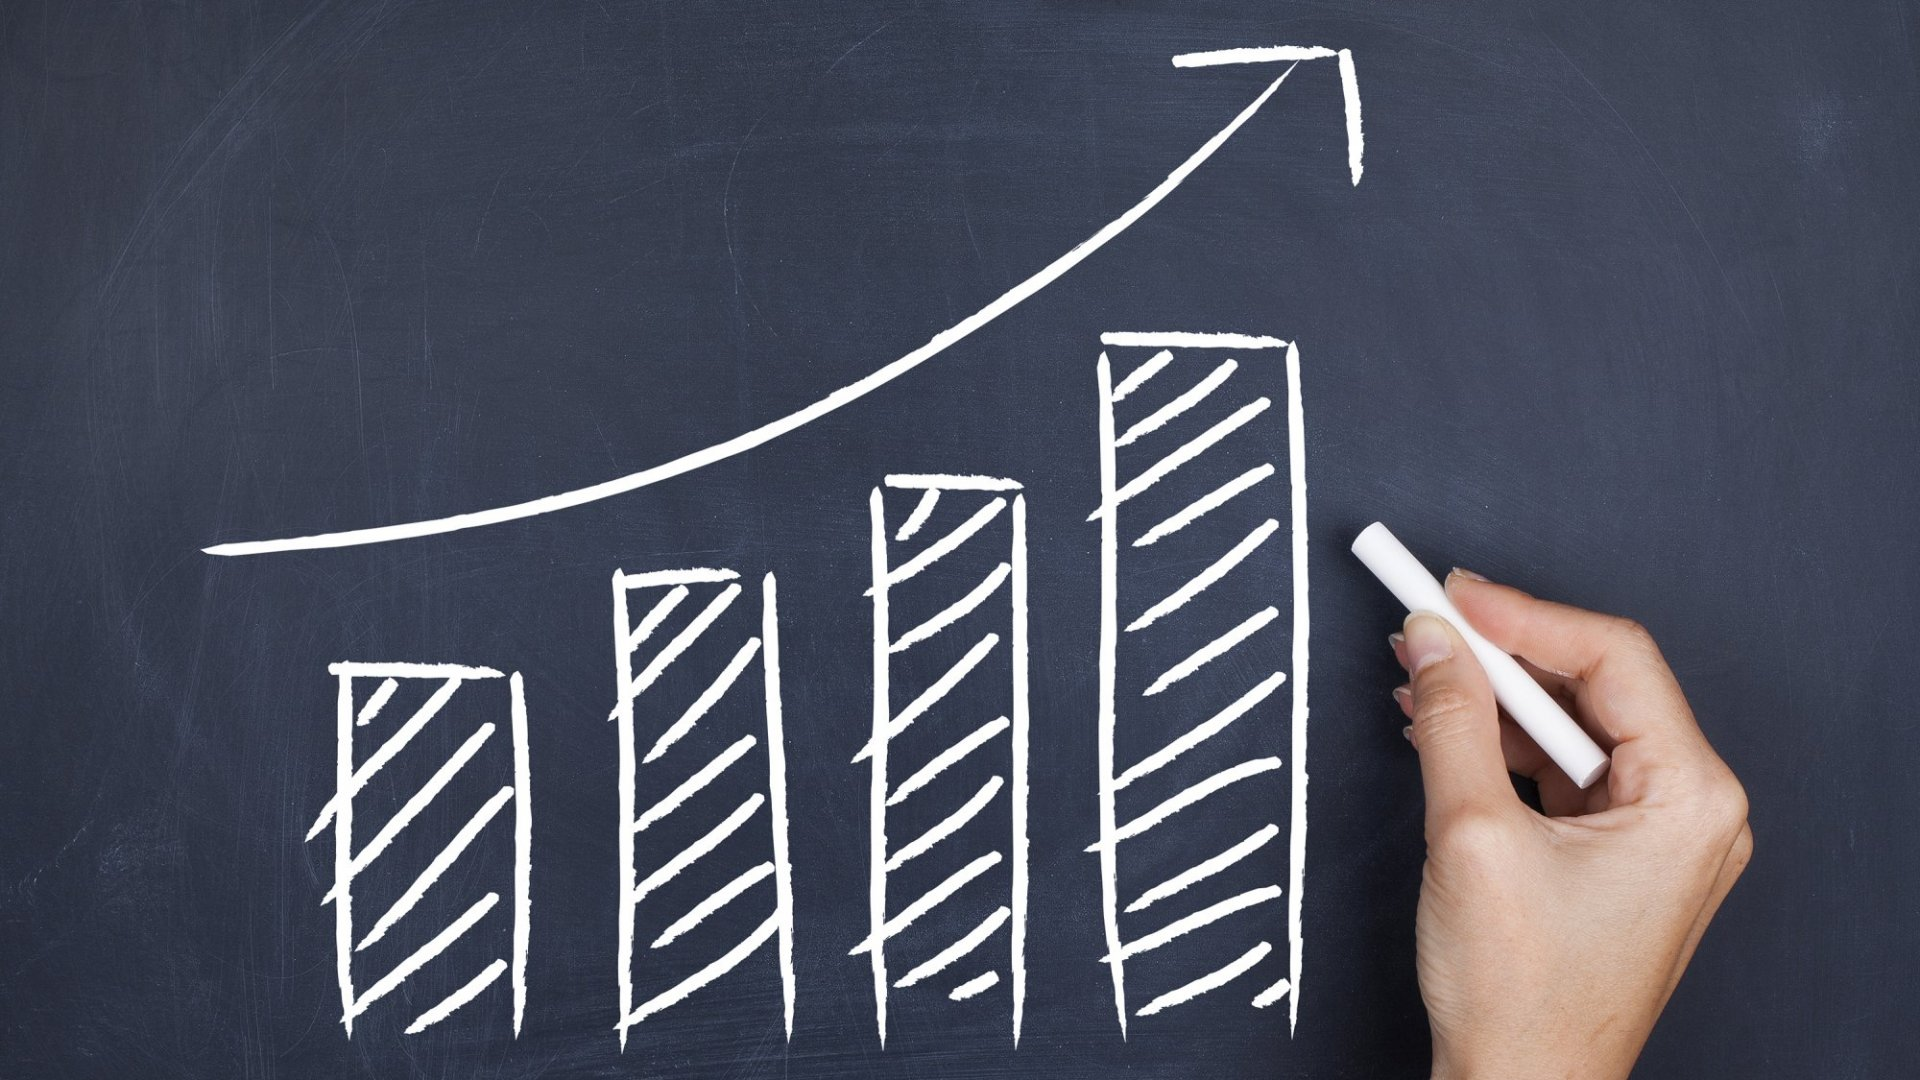 6 Tips to Make Your Company More Scalable